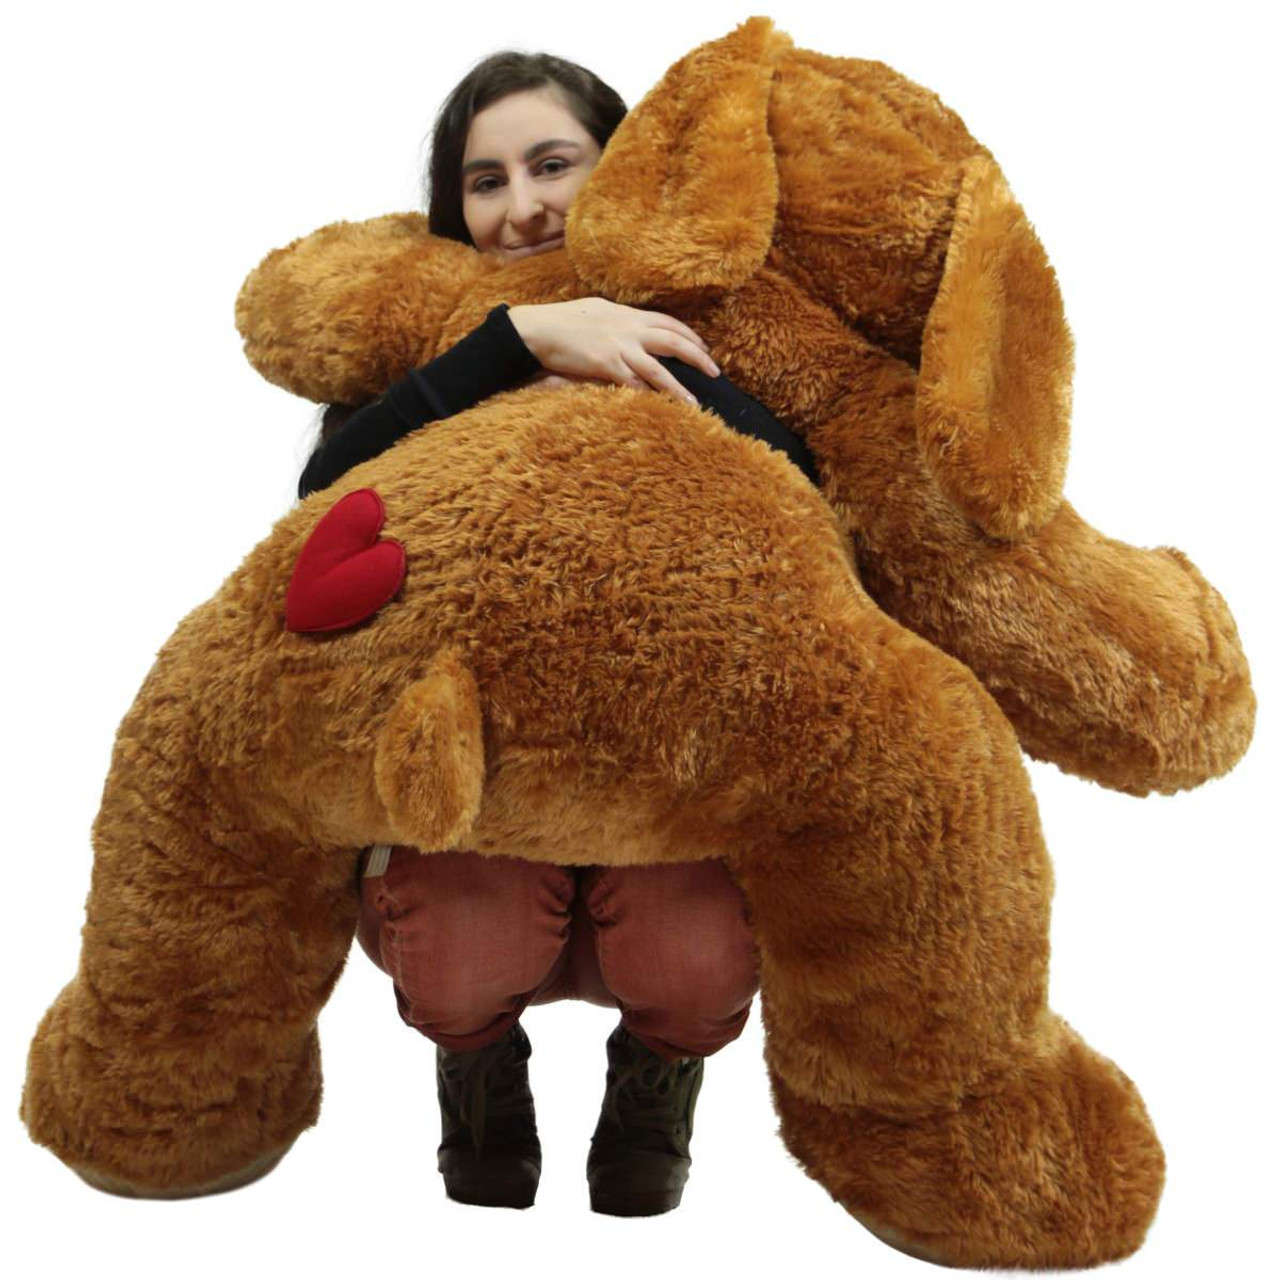 giant stuffed puppy dog with heart on butt 5 feet long soft extremely large plush brown stuffed. Black Bedroom Furniture Sets. Home Design Ideas